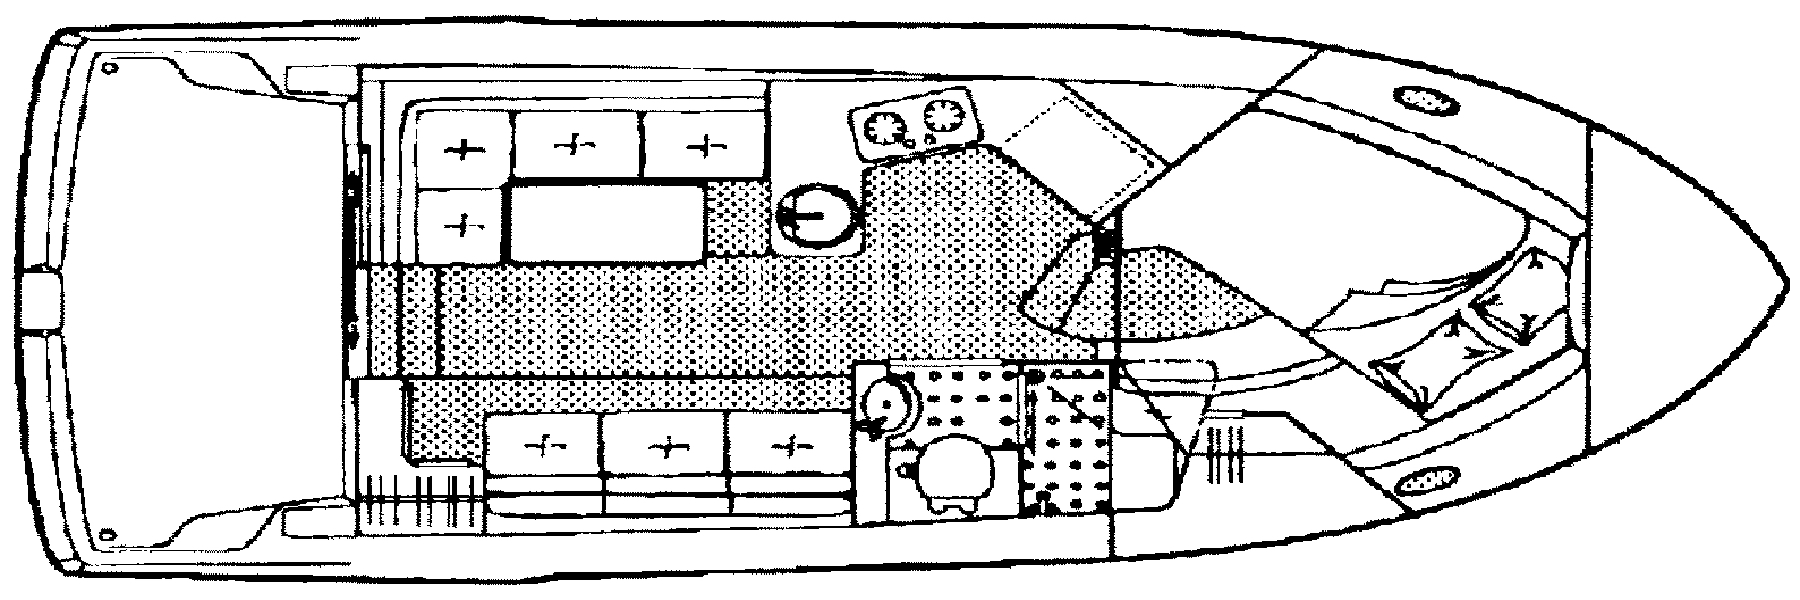 Carver 2828 Command Bridge; 300 Sedan Floor Plan 2